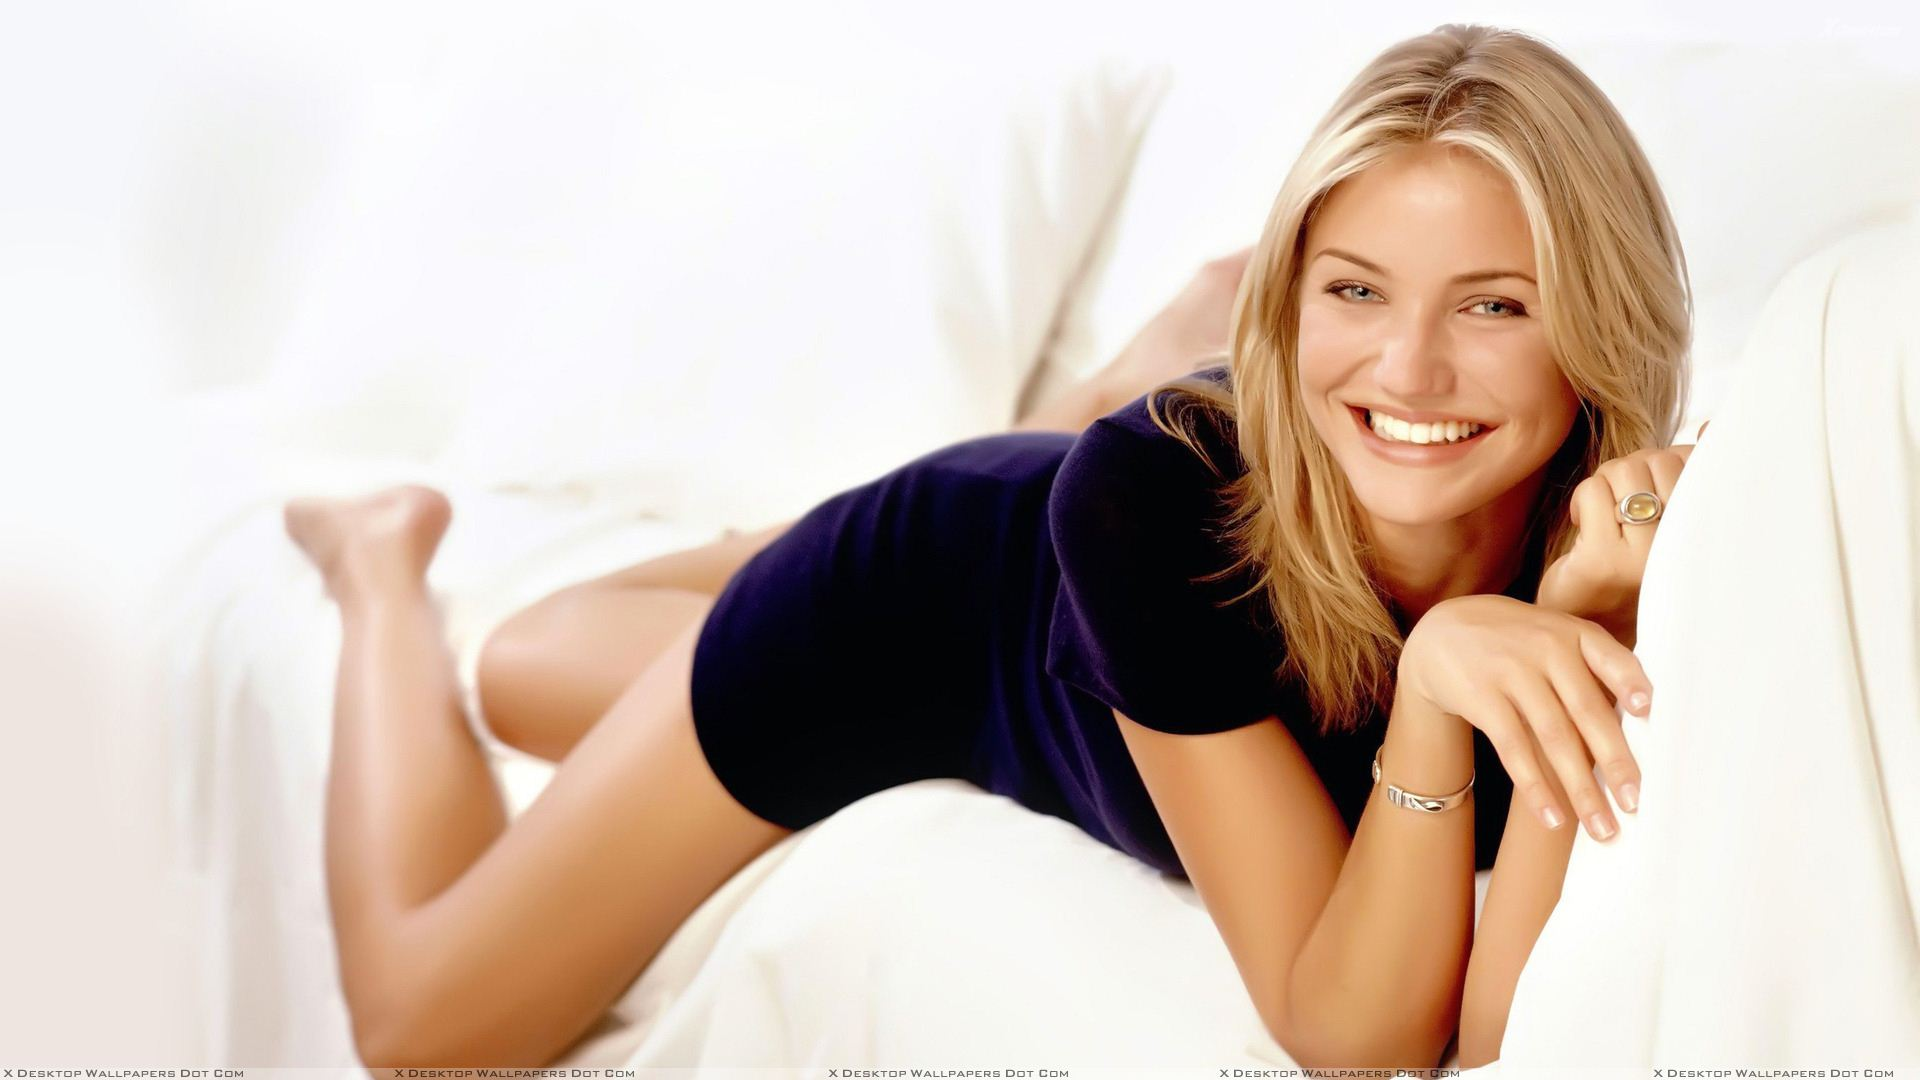 Cameron Diaz Wallpapers, Photos & Images in HD